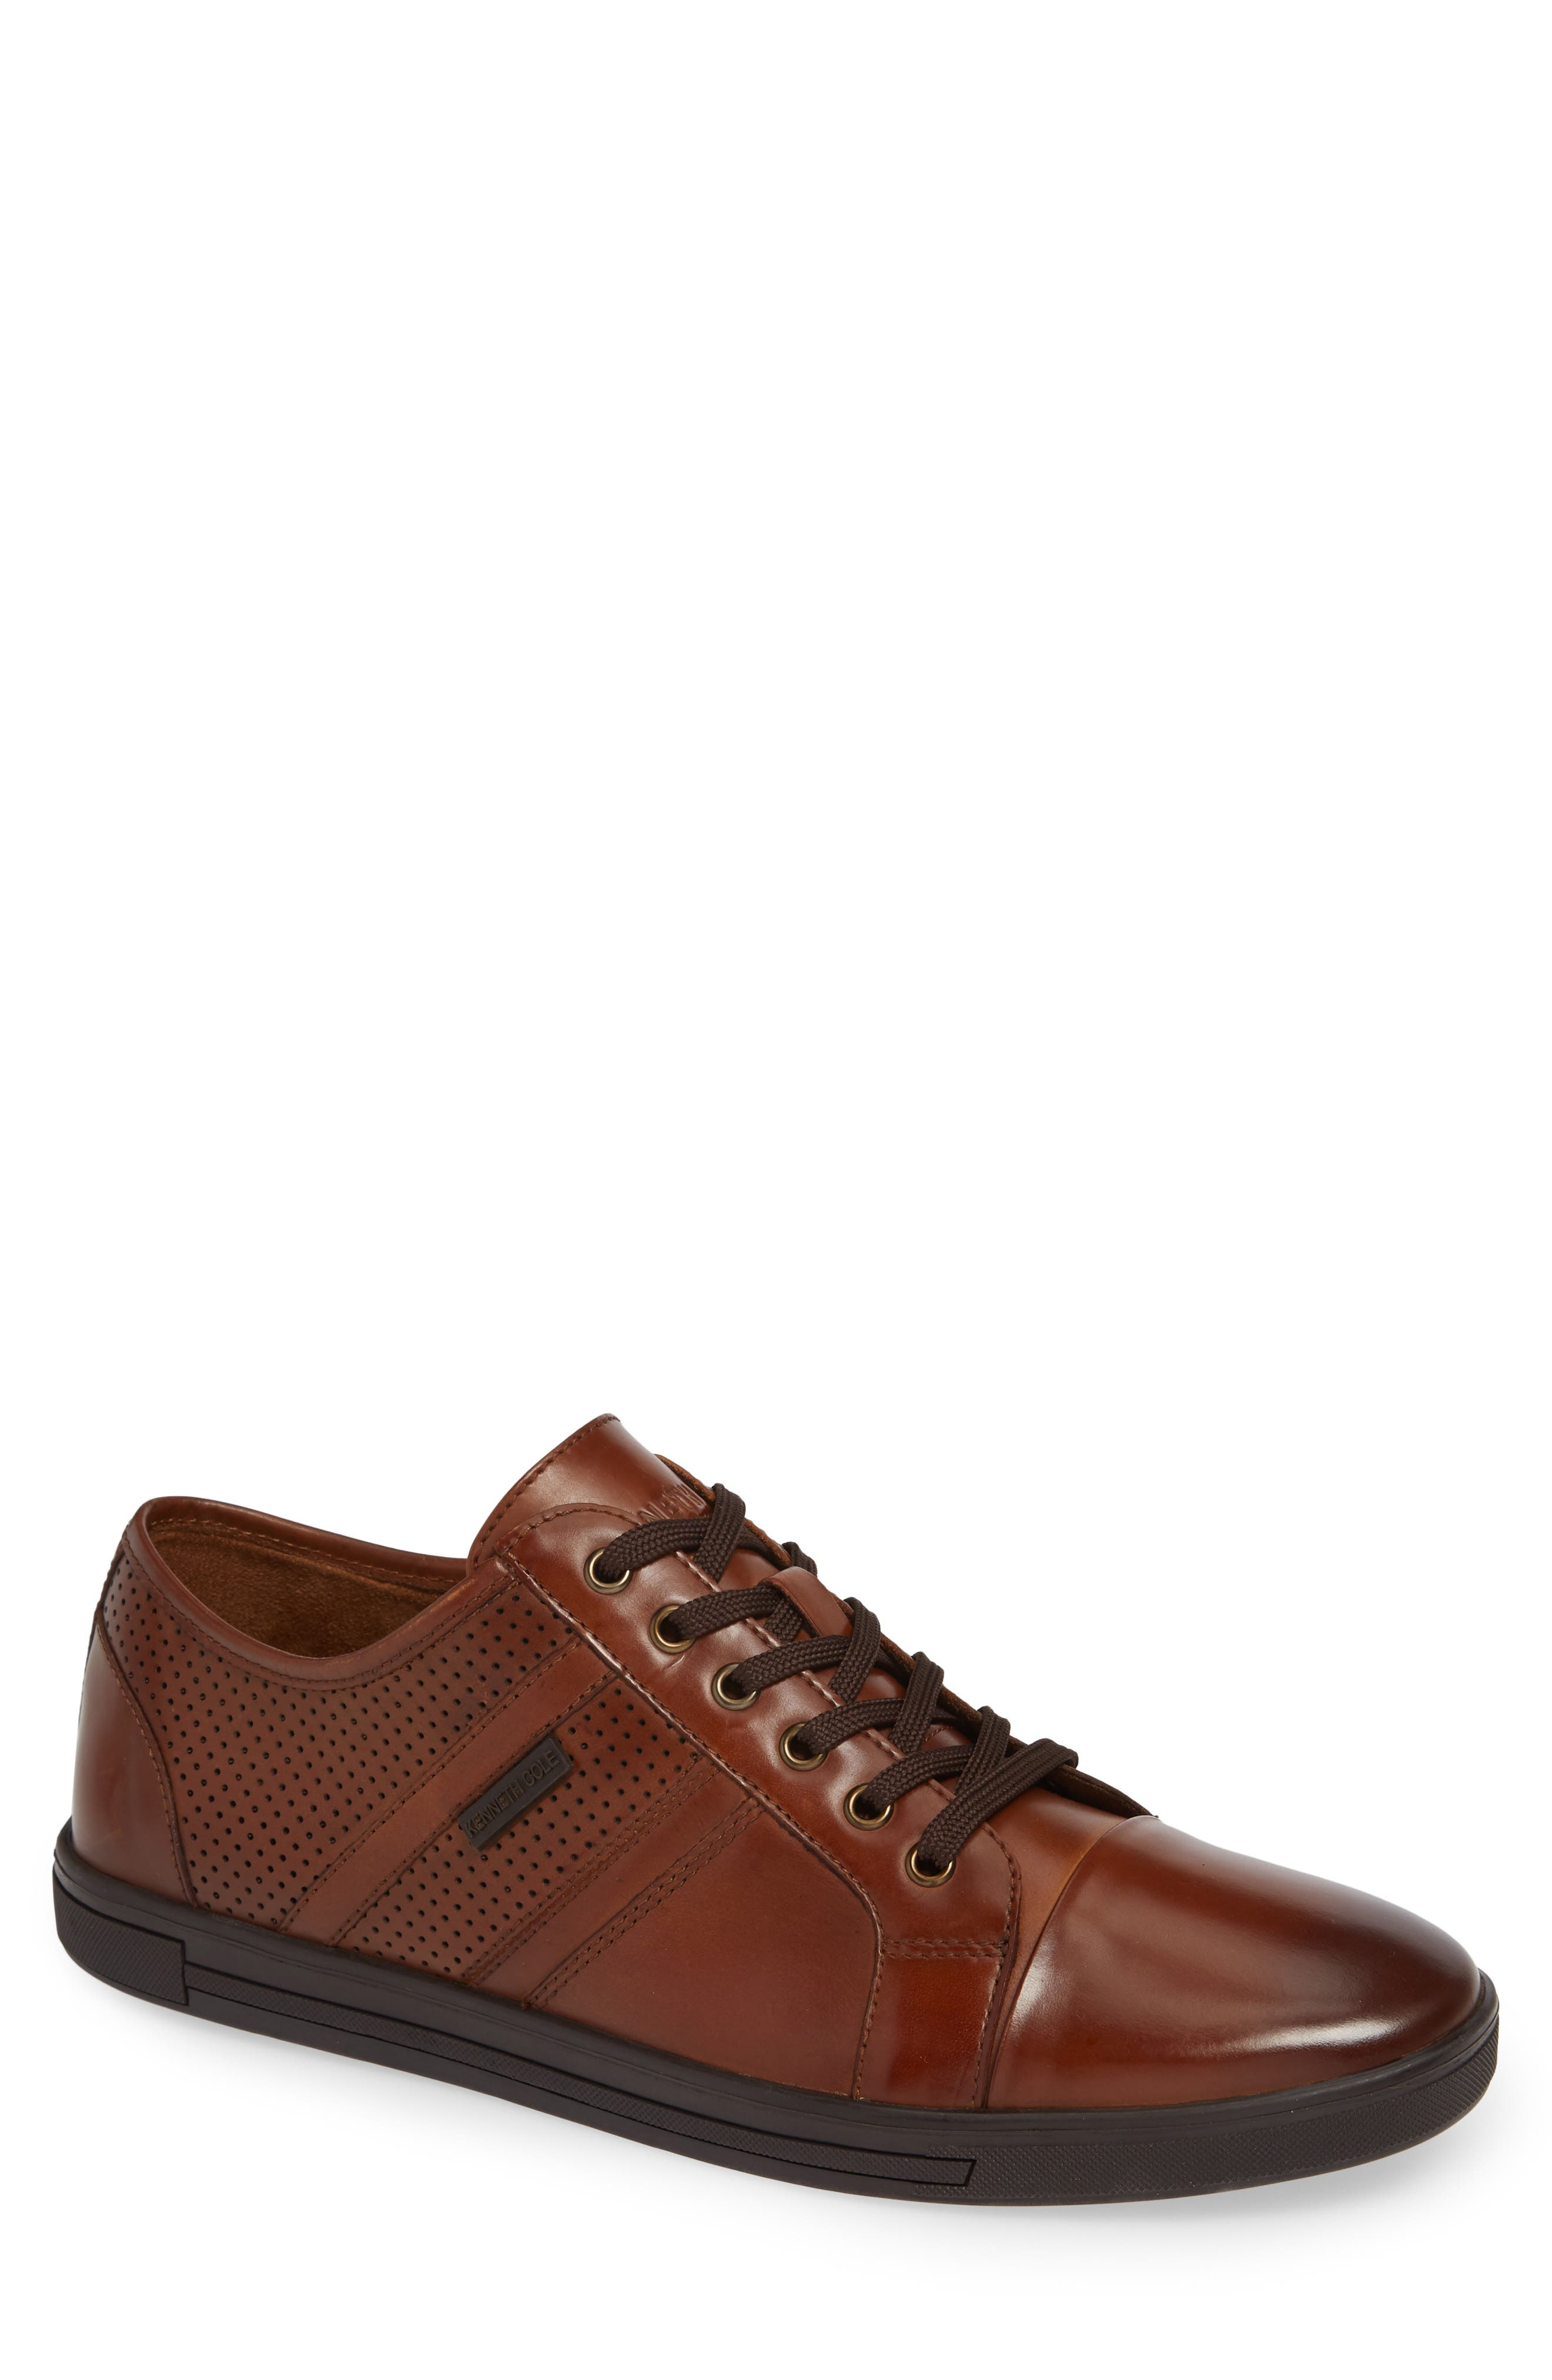 Initial Step Sneaker,                         Main,                         color, COGNAC LEATHER